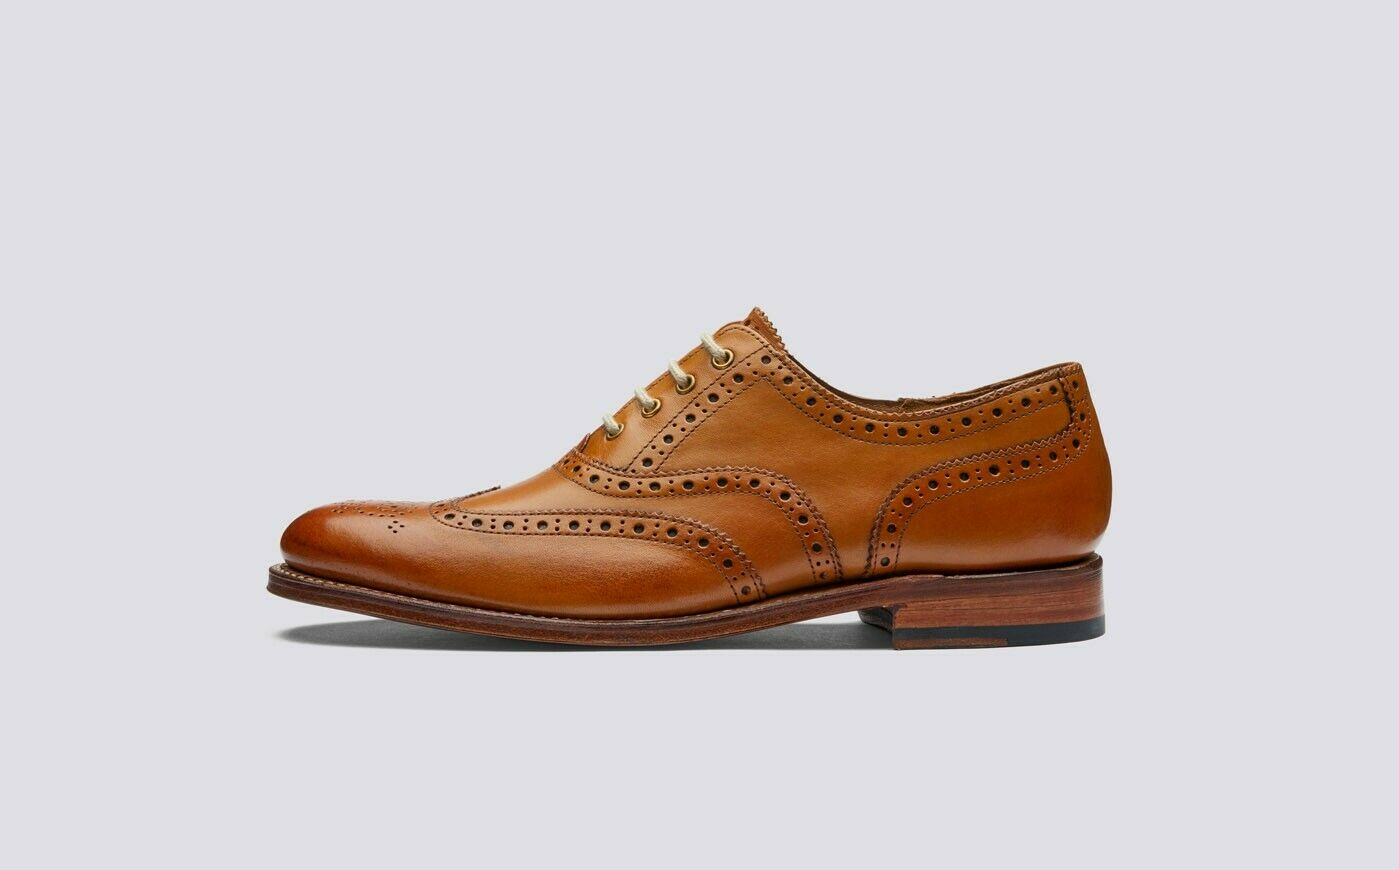 Handmade Women's Genuine Leather Oxford Brogue Wingtip Lace-Up Shoes